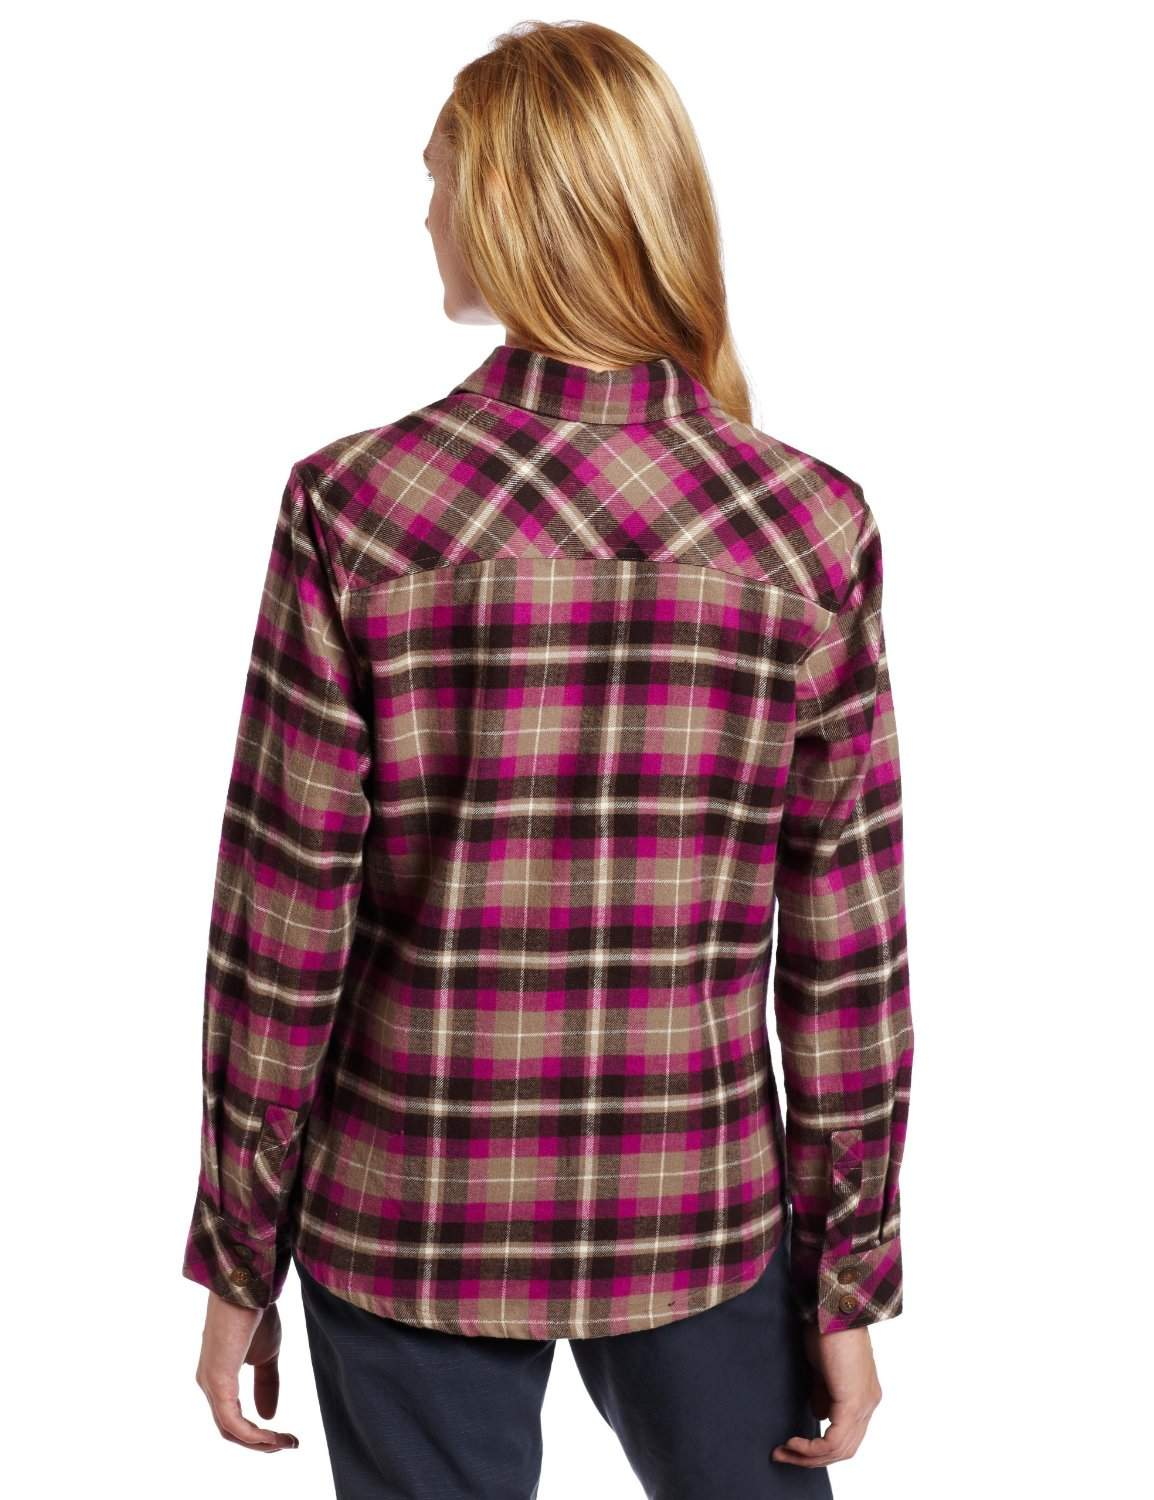 Womens flannel shirts plaid flannel shirts for women for Girl in flannel shirt